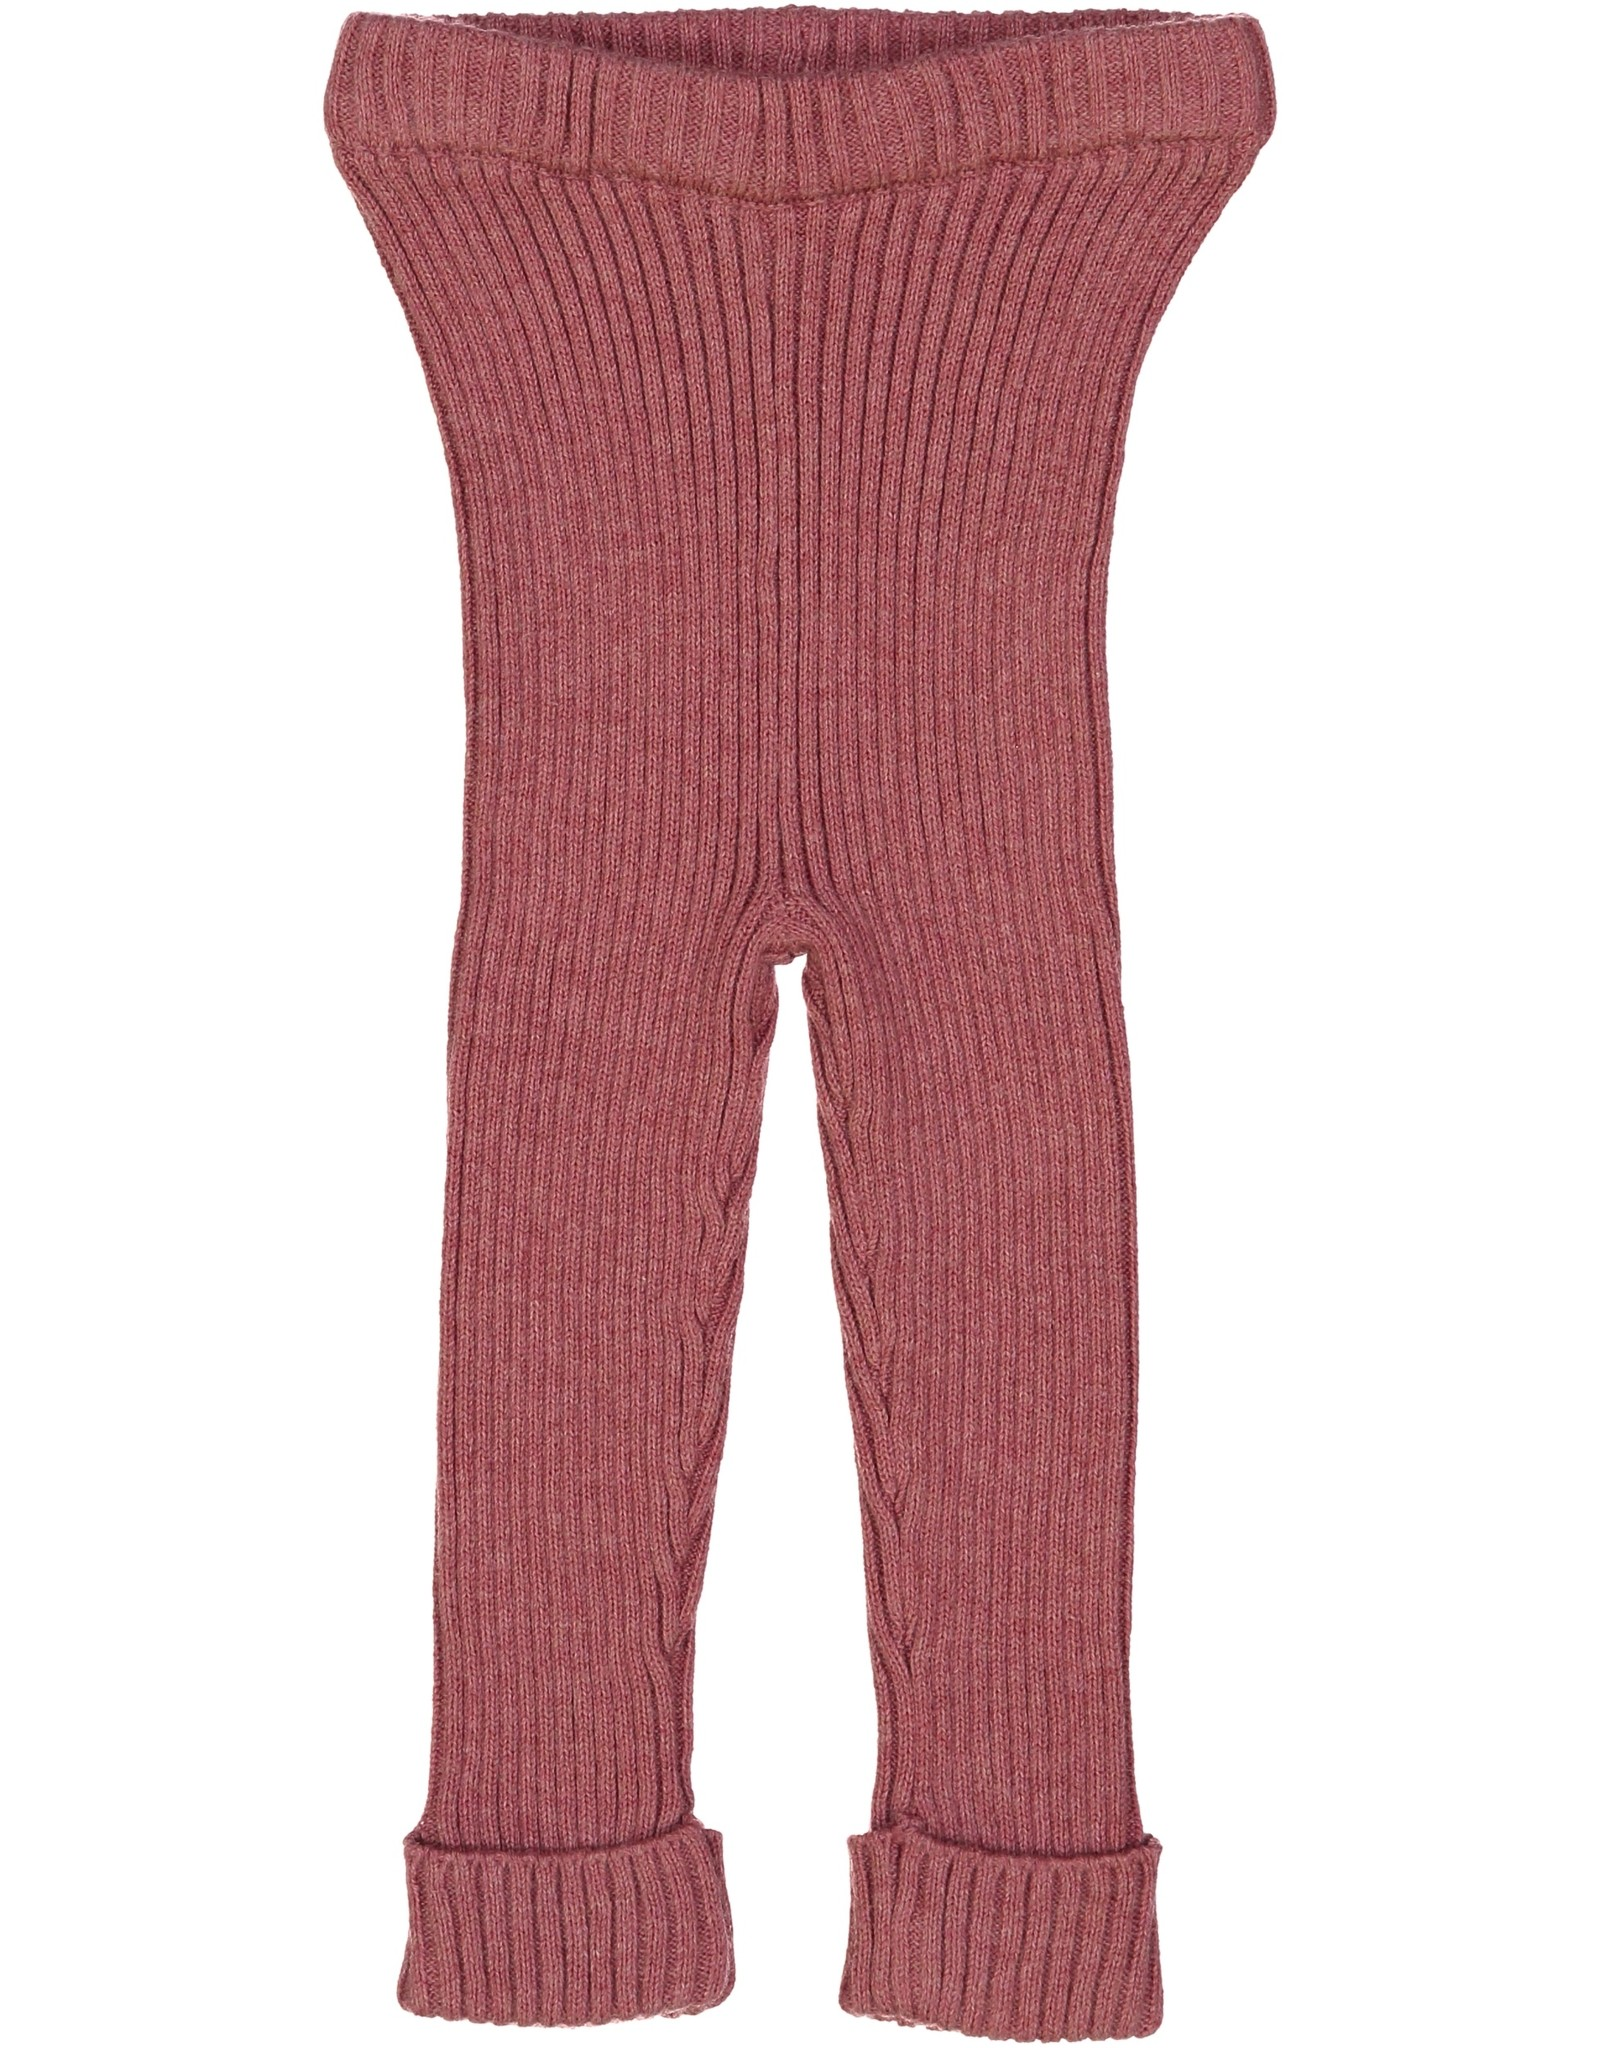 Analogie Rib Knit Leggings